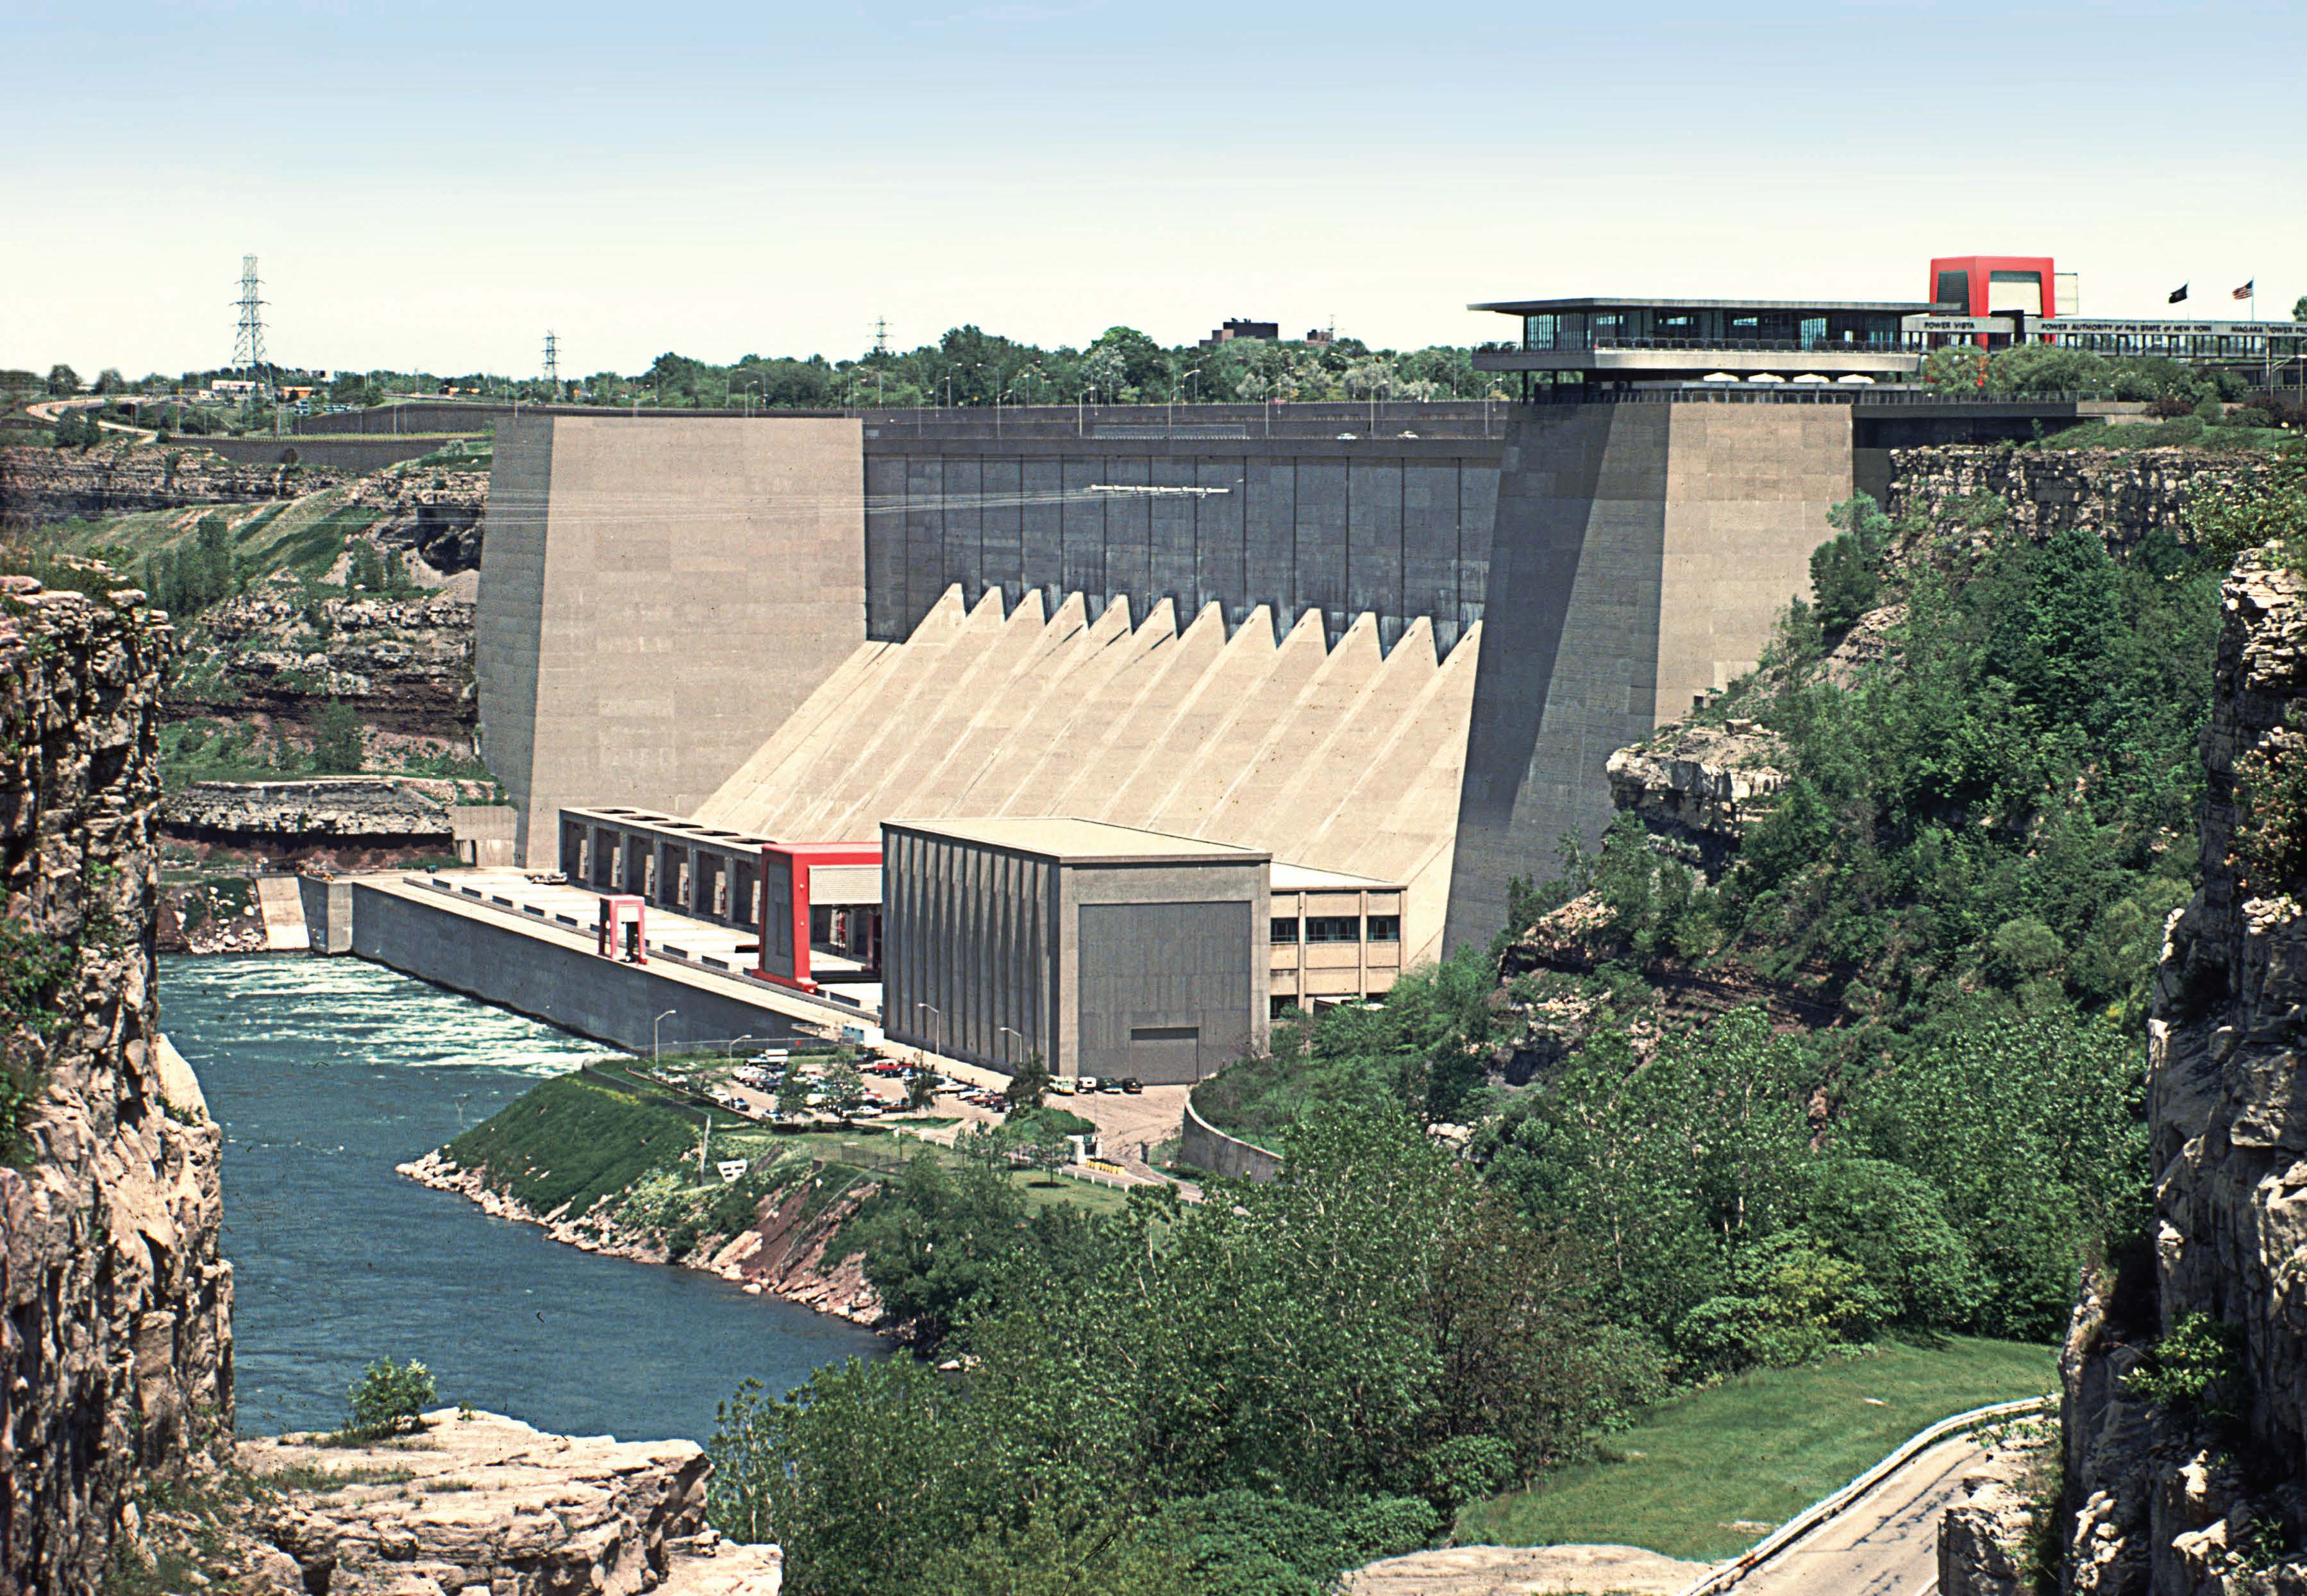 Roger Tory Peterson Institute of Natural History Niagara Falls and Western New York, Hydroelectric wonder: the Robert Moses Niagara Power Plant – The ...